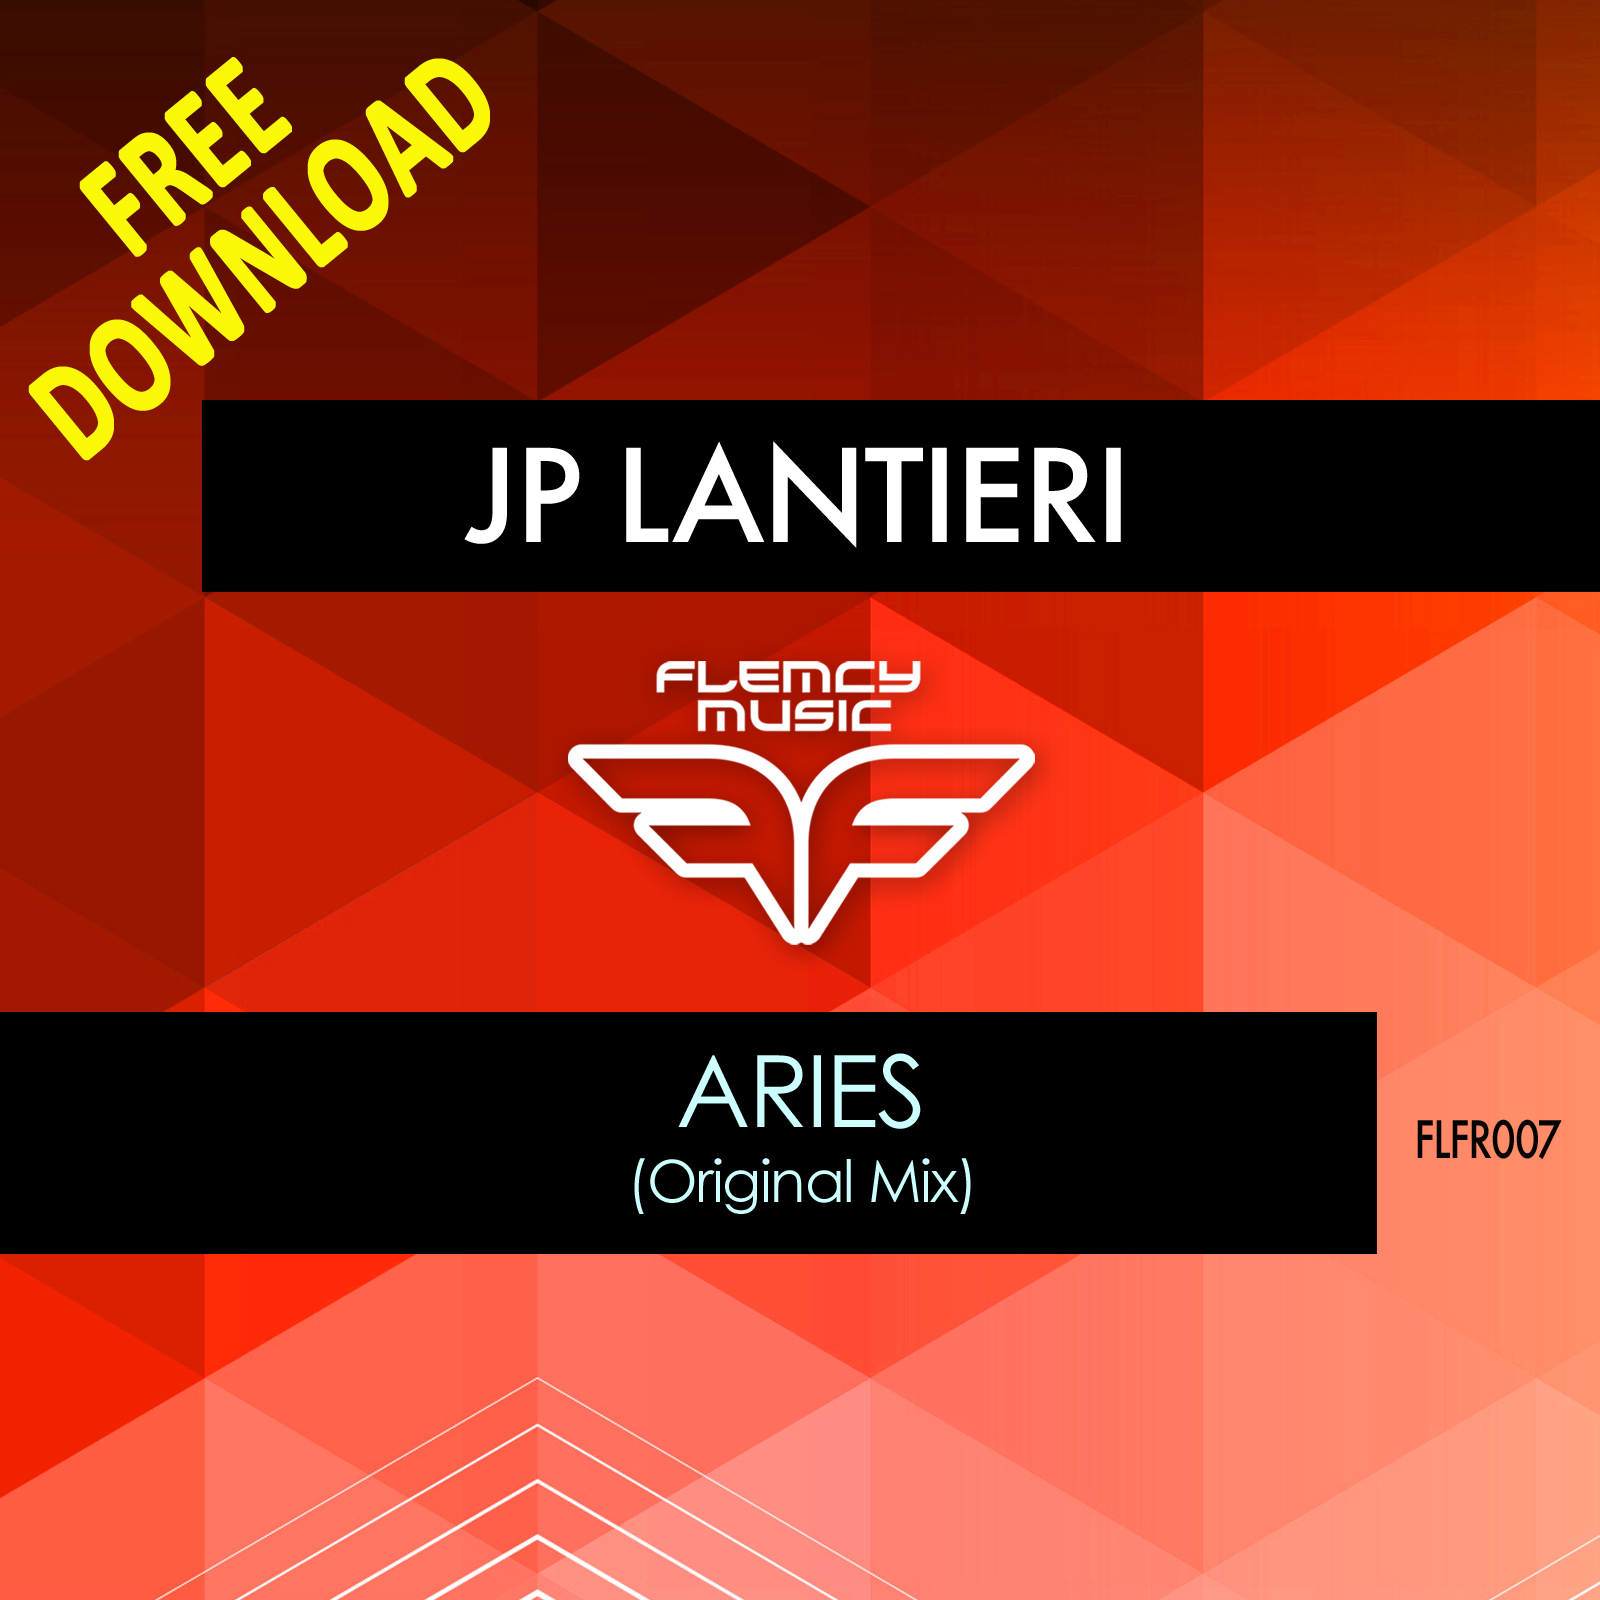 Flemcy Music JP LANTIERI Aries Free Download Top Left